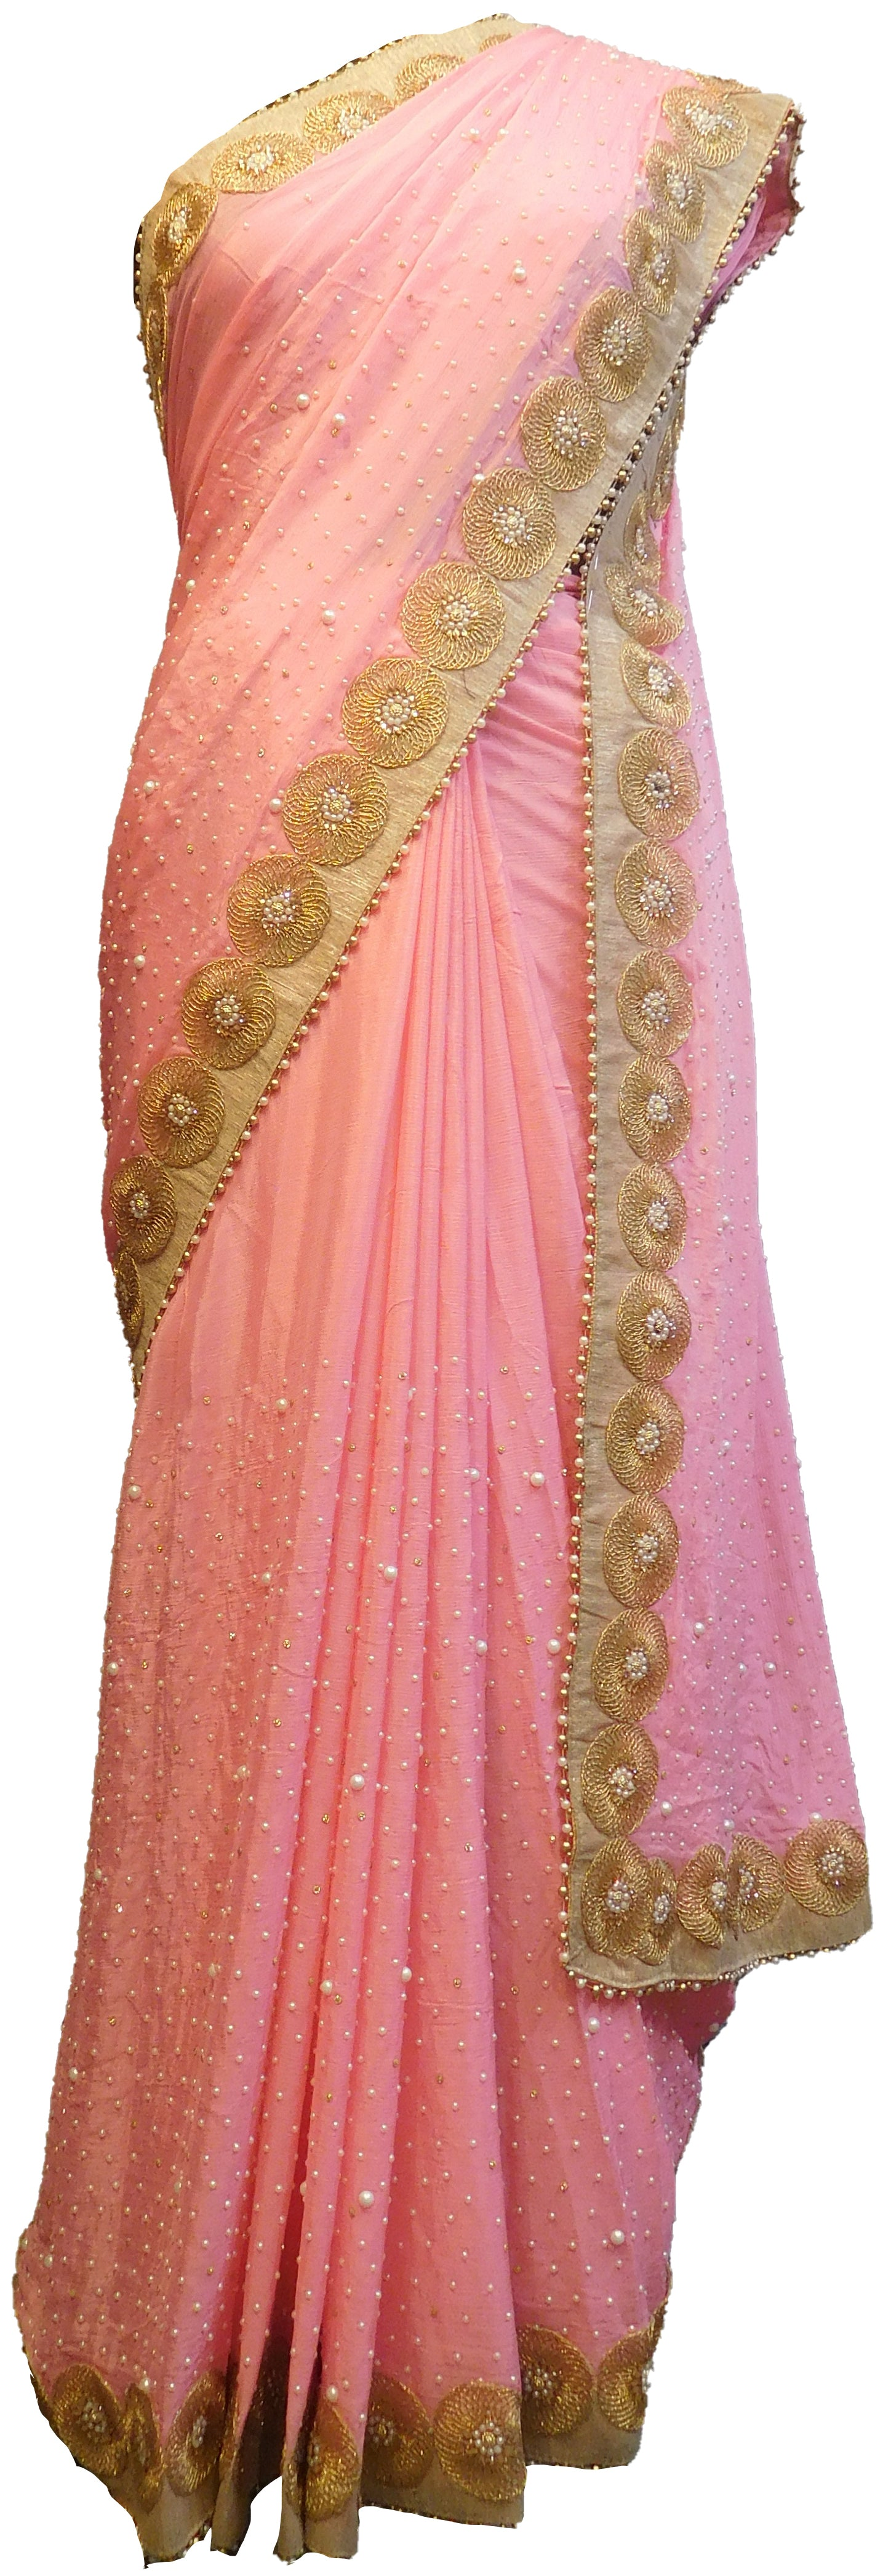 SMSAREE Pink Designer Wedding Partywear Crepe (Chinon) Stone Zari & Pearl Hand Embroidery Work Bridal Saree Sari With Blouse Piece E509